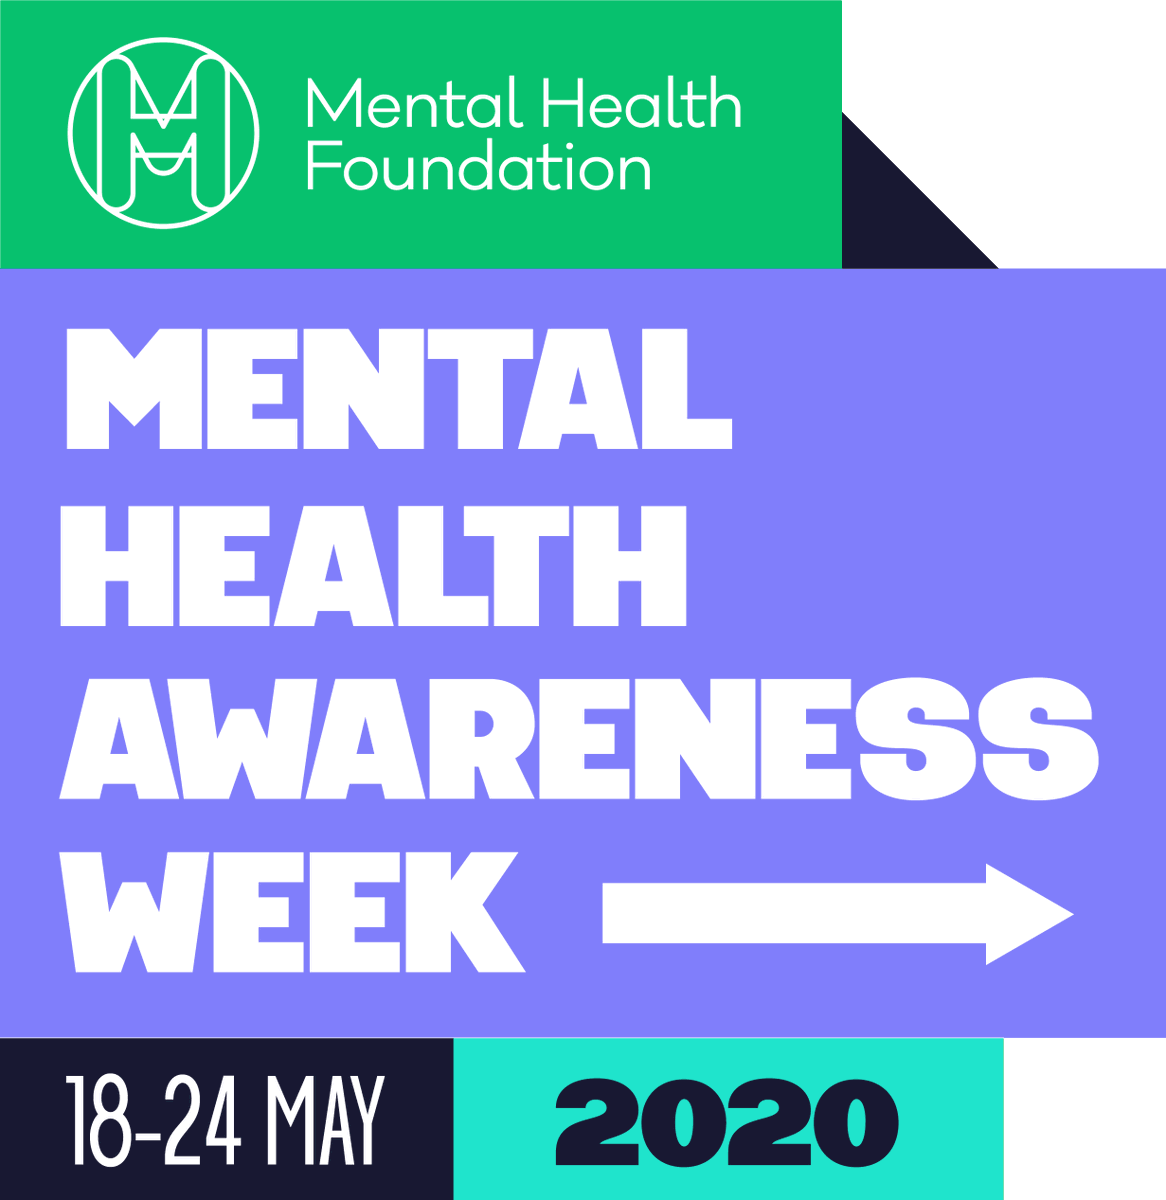 It's #MentalHealthAwareness week and this year's theme is #kindness, we felt it is important now more than ever to set up an Employee Awareness Programme, designed to help support our Partners and their families through these challenging times. ❤🌏 #mentalhealth #kindness https://t.co/a9lunfhkHS